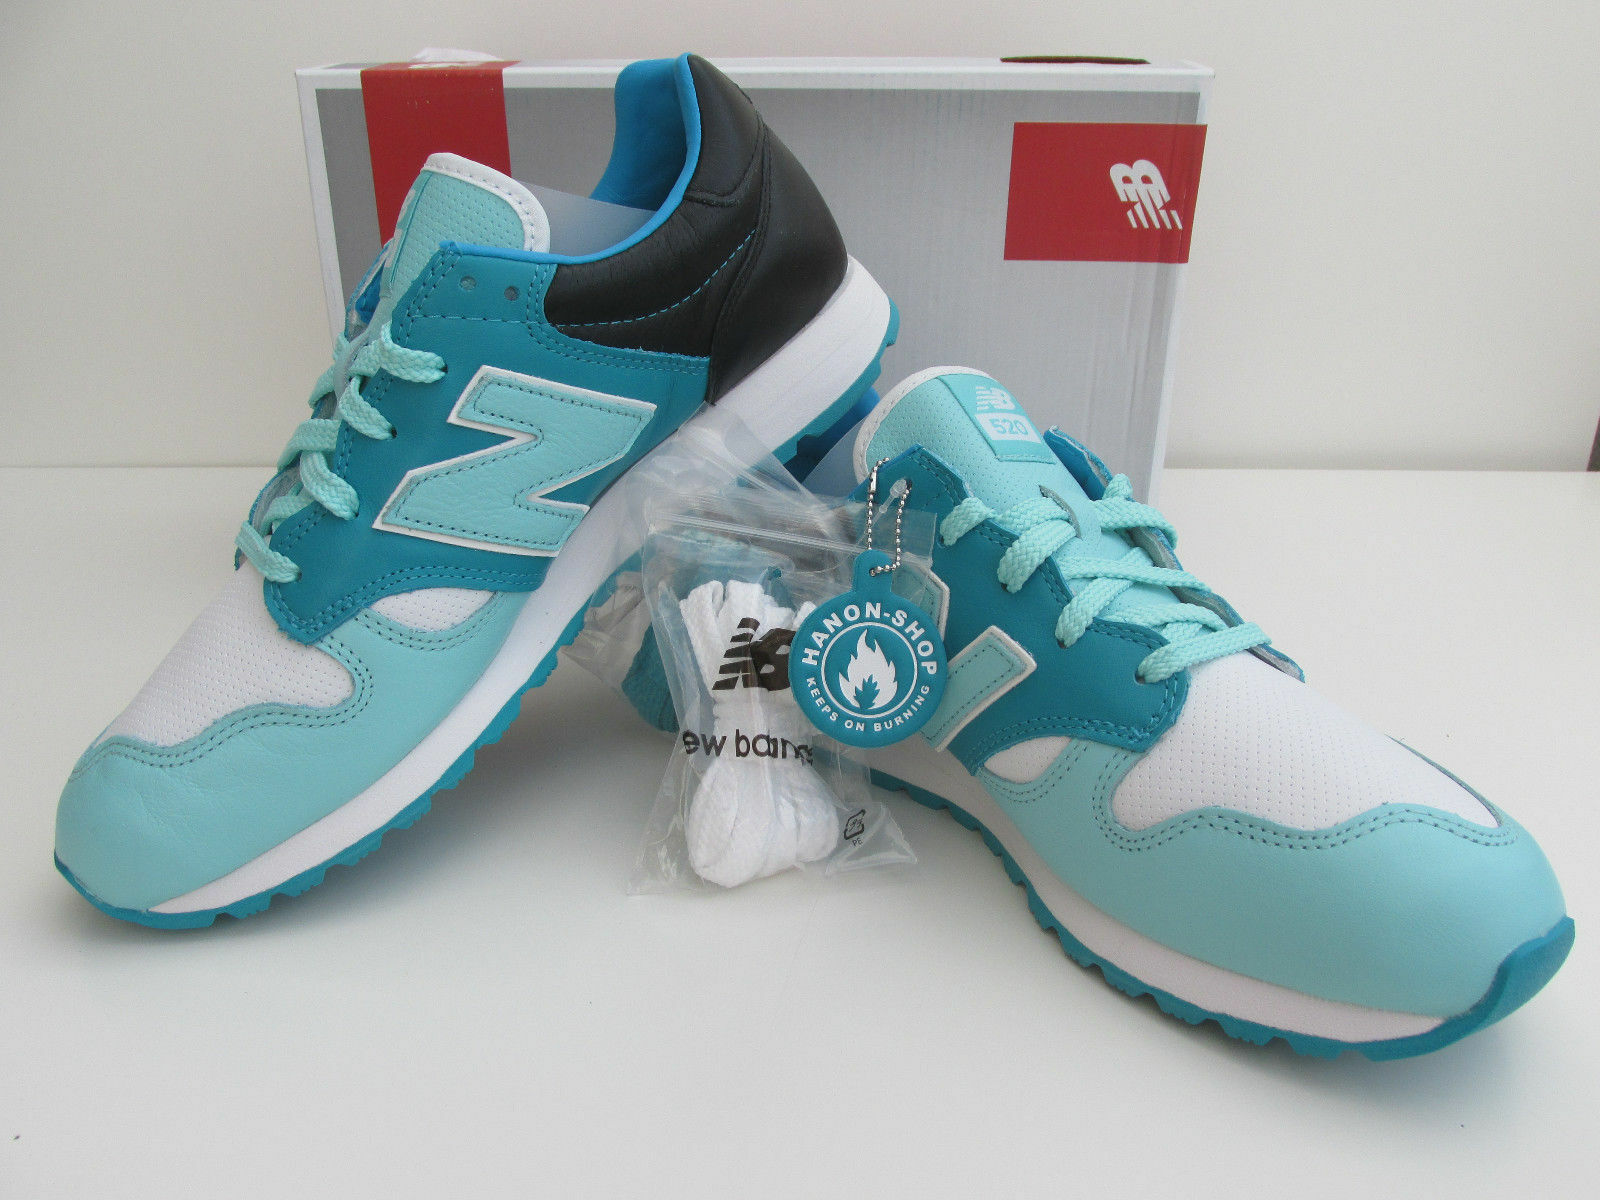 NUOVO CON SCATOLA NEW BALANCE 520 HNF HNF HNF Hanon Fisherman'S bluS 577 576 bd6ff7